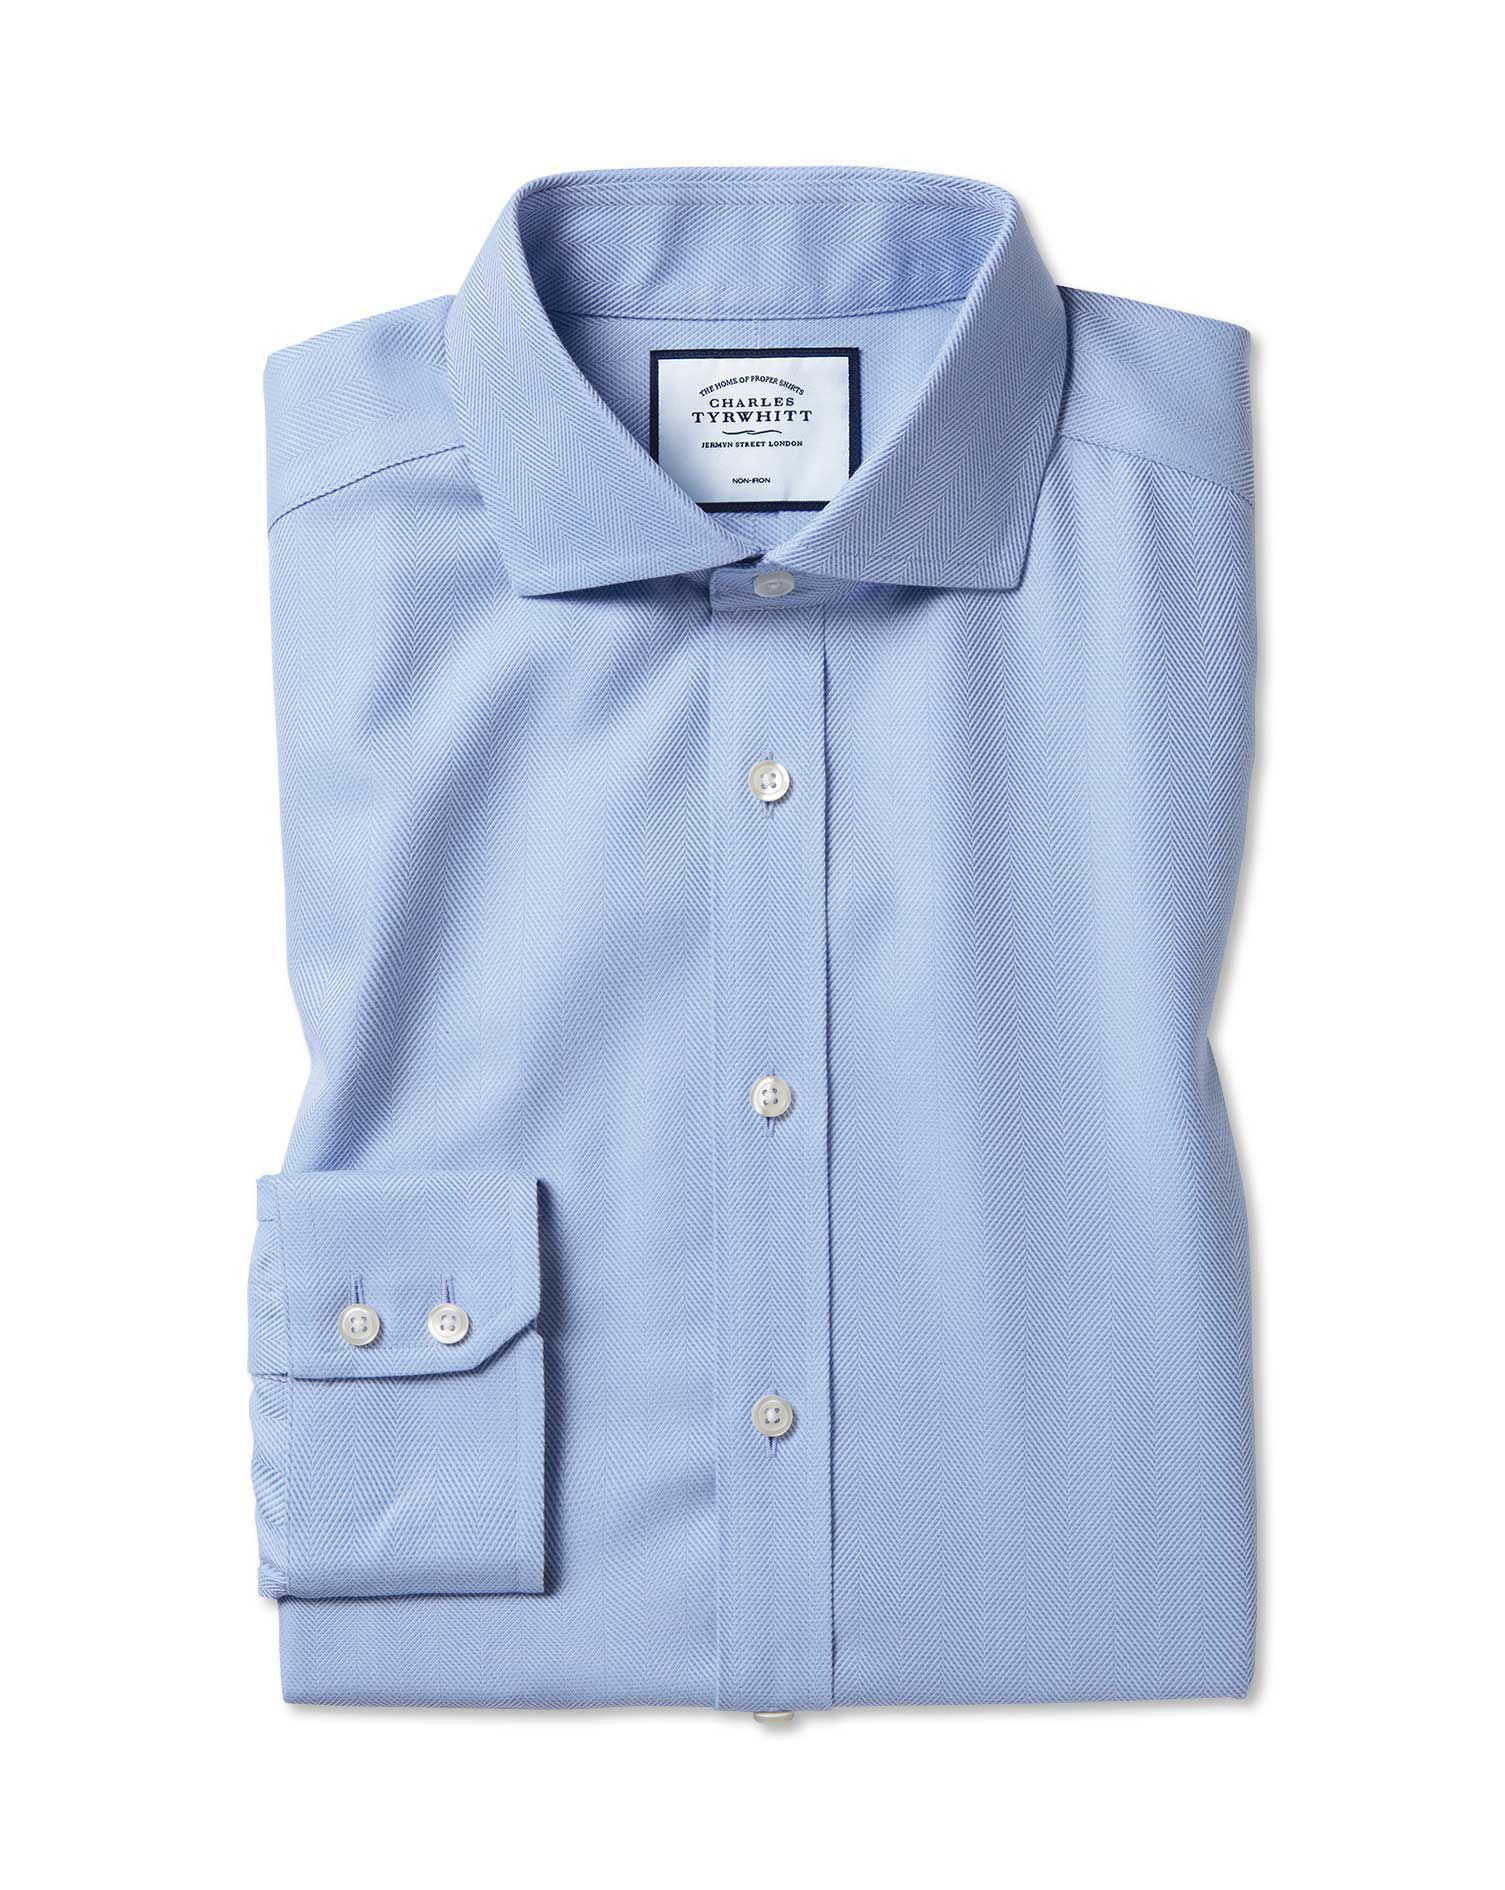 Extra Slim Fit Cutaway Collar Non-Iron Herringbone Sky Blue Cotton Formal Shirt Single Cuff Size 15.